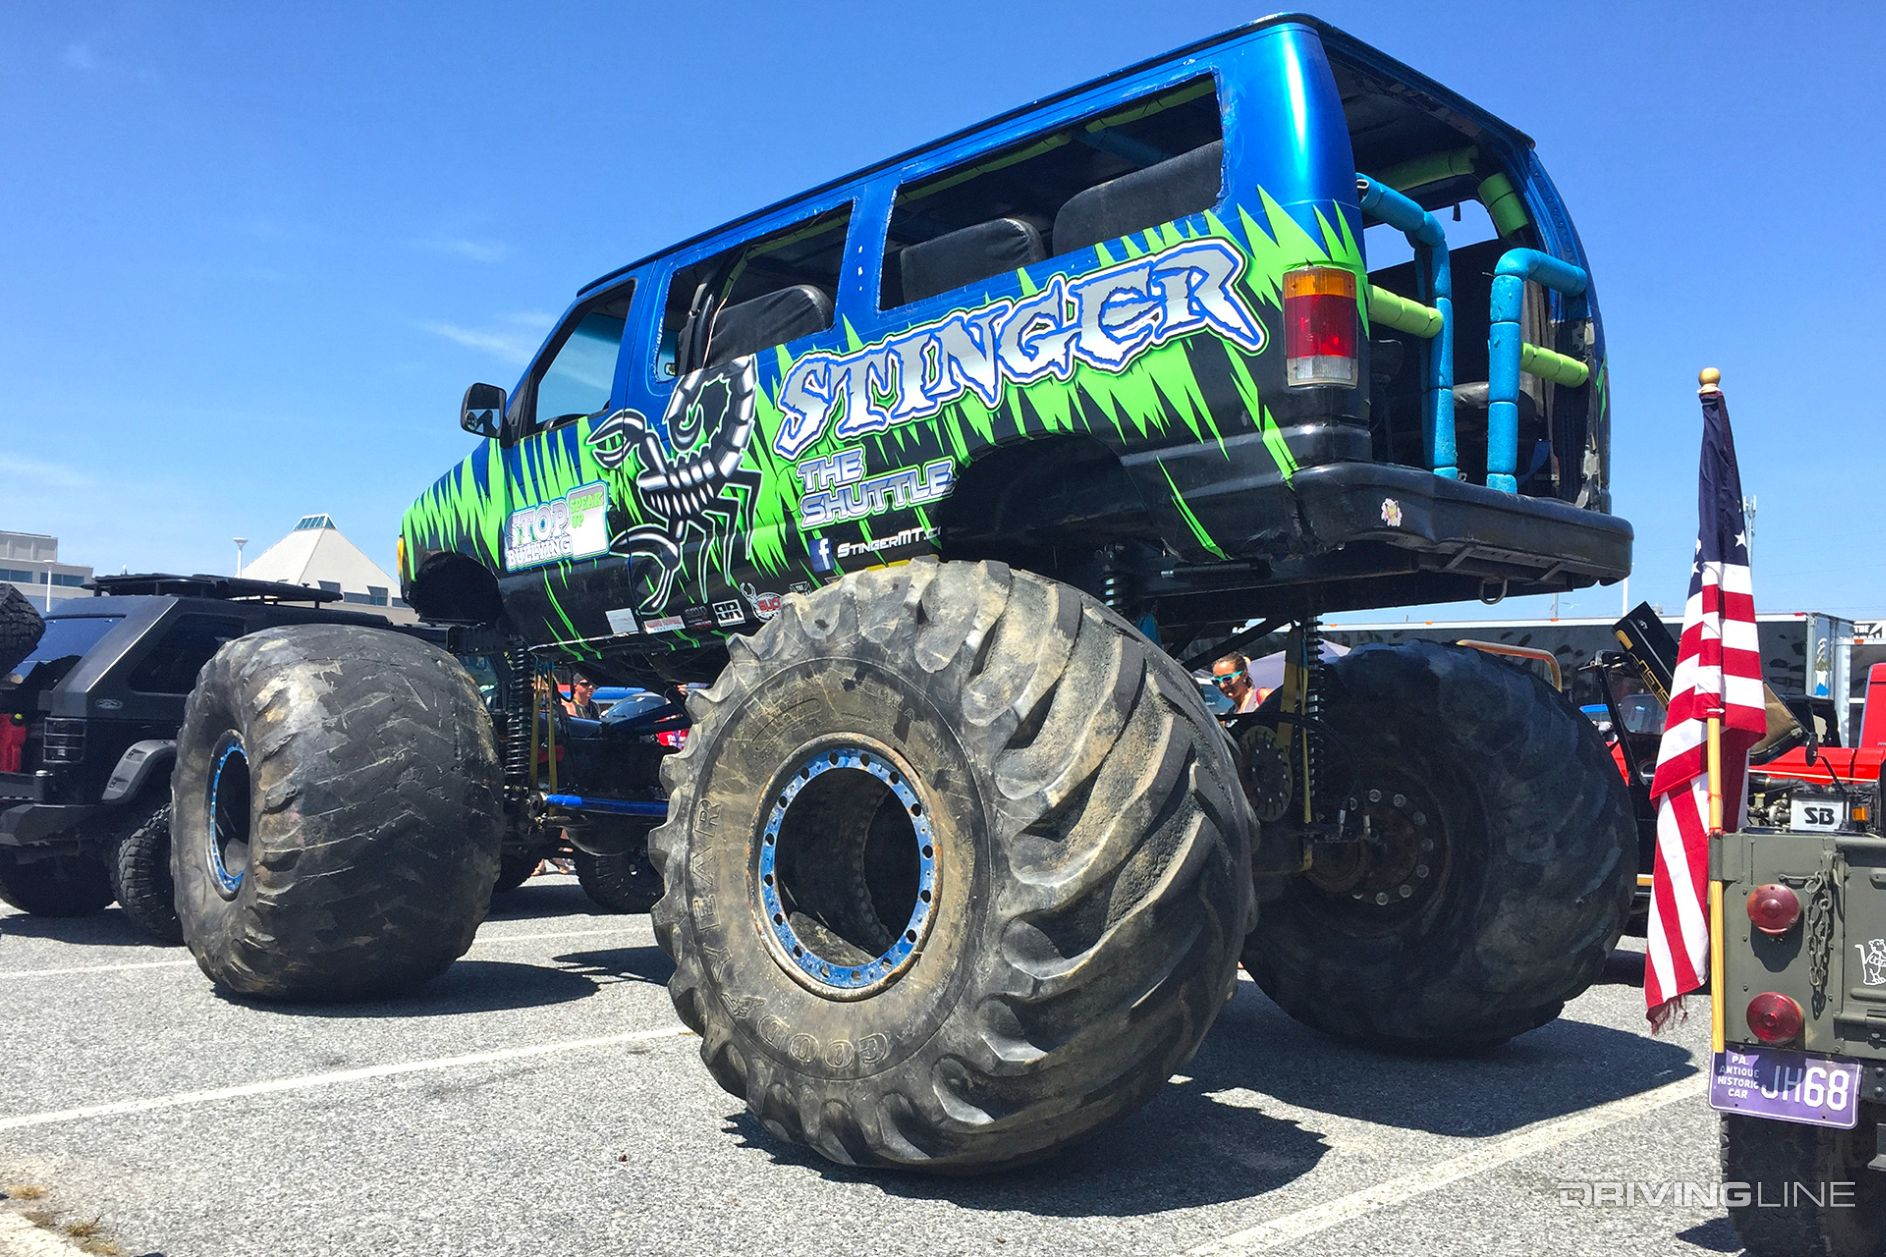 Ocean City Jeep Week >> Ocean City Jeep Week 2016: Fun in the Sun | DrivingLine